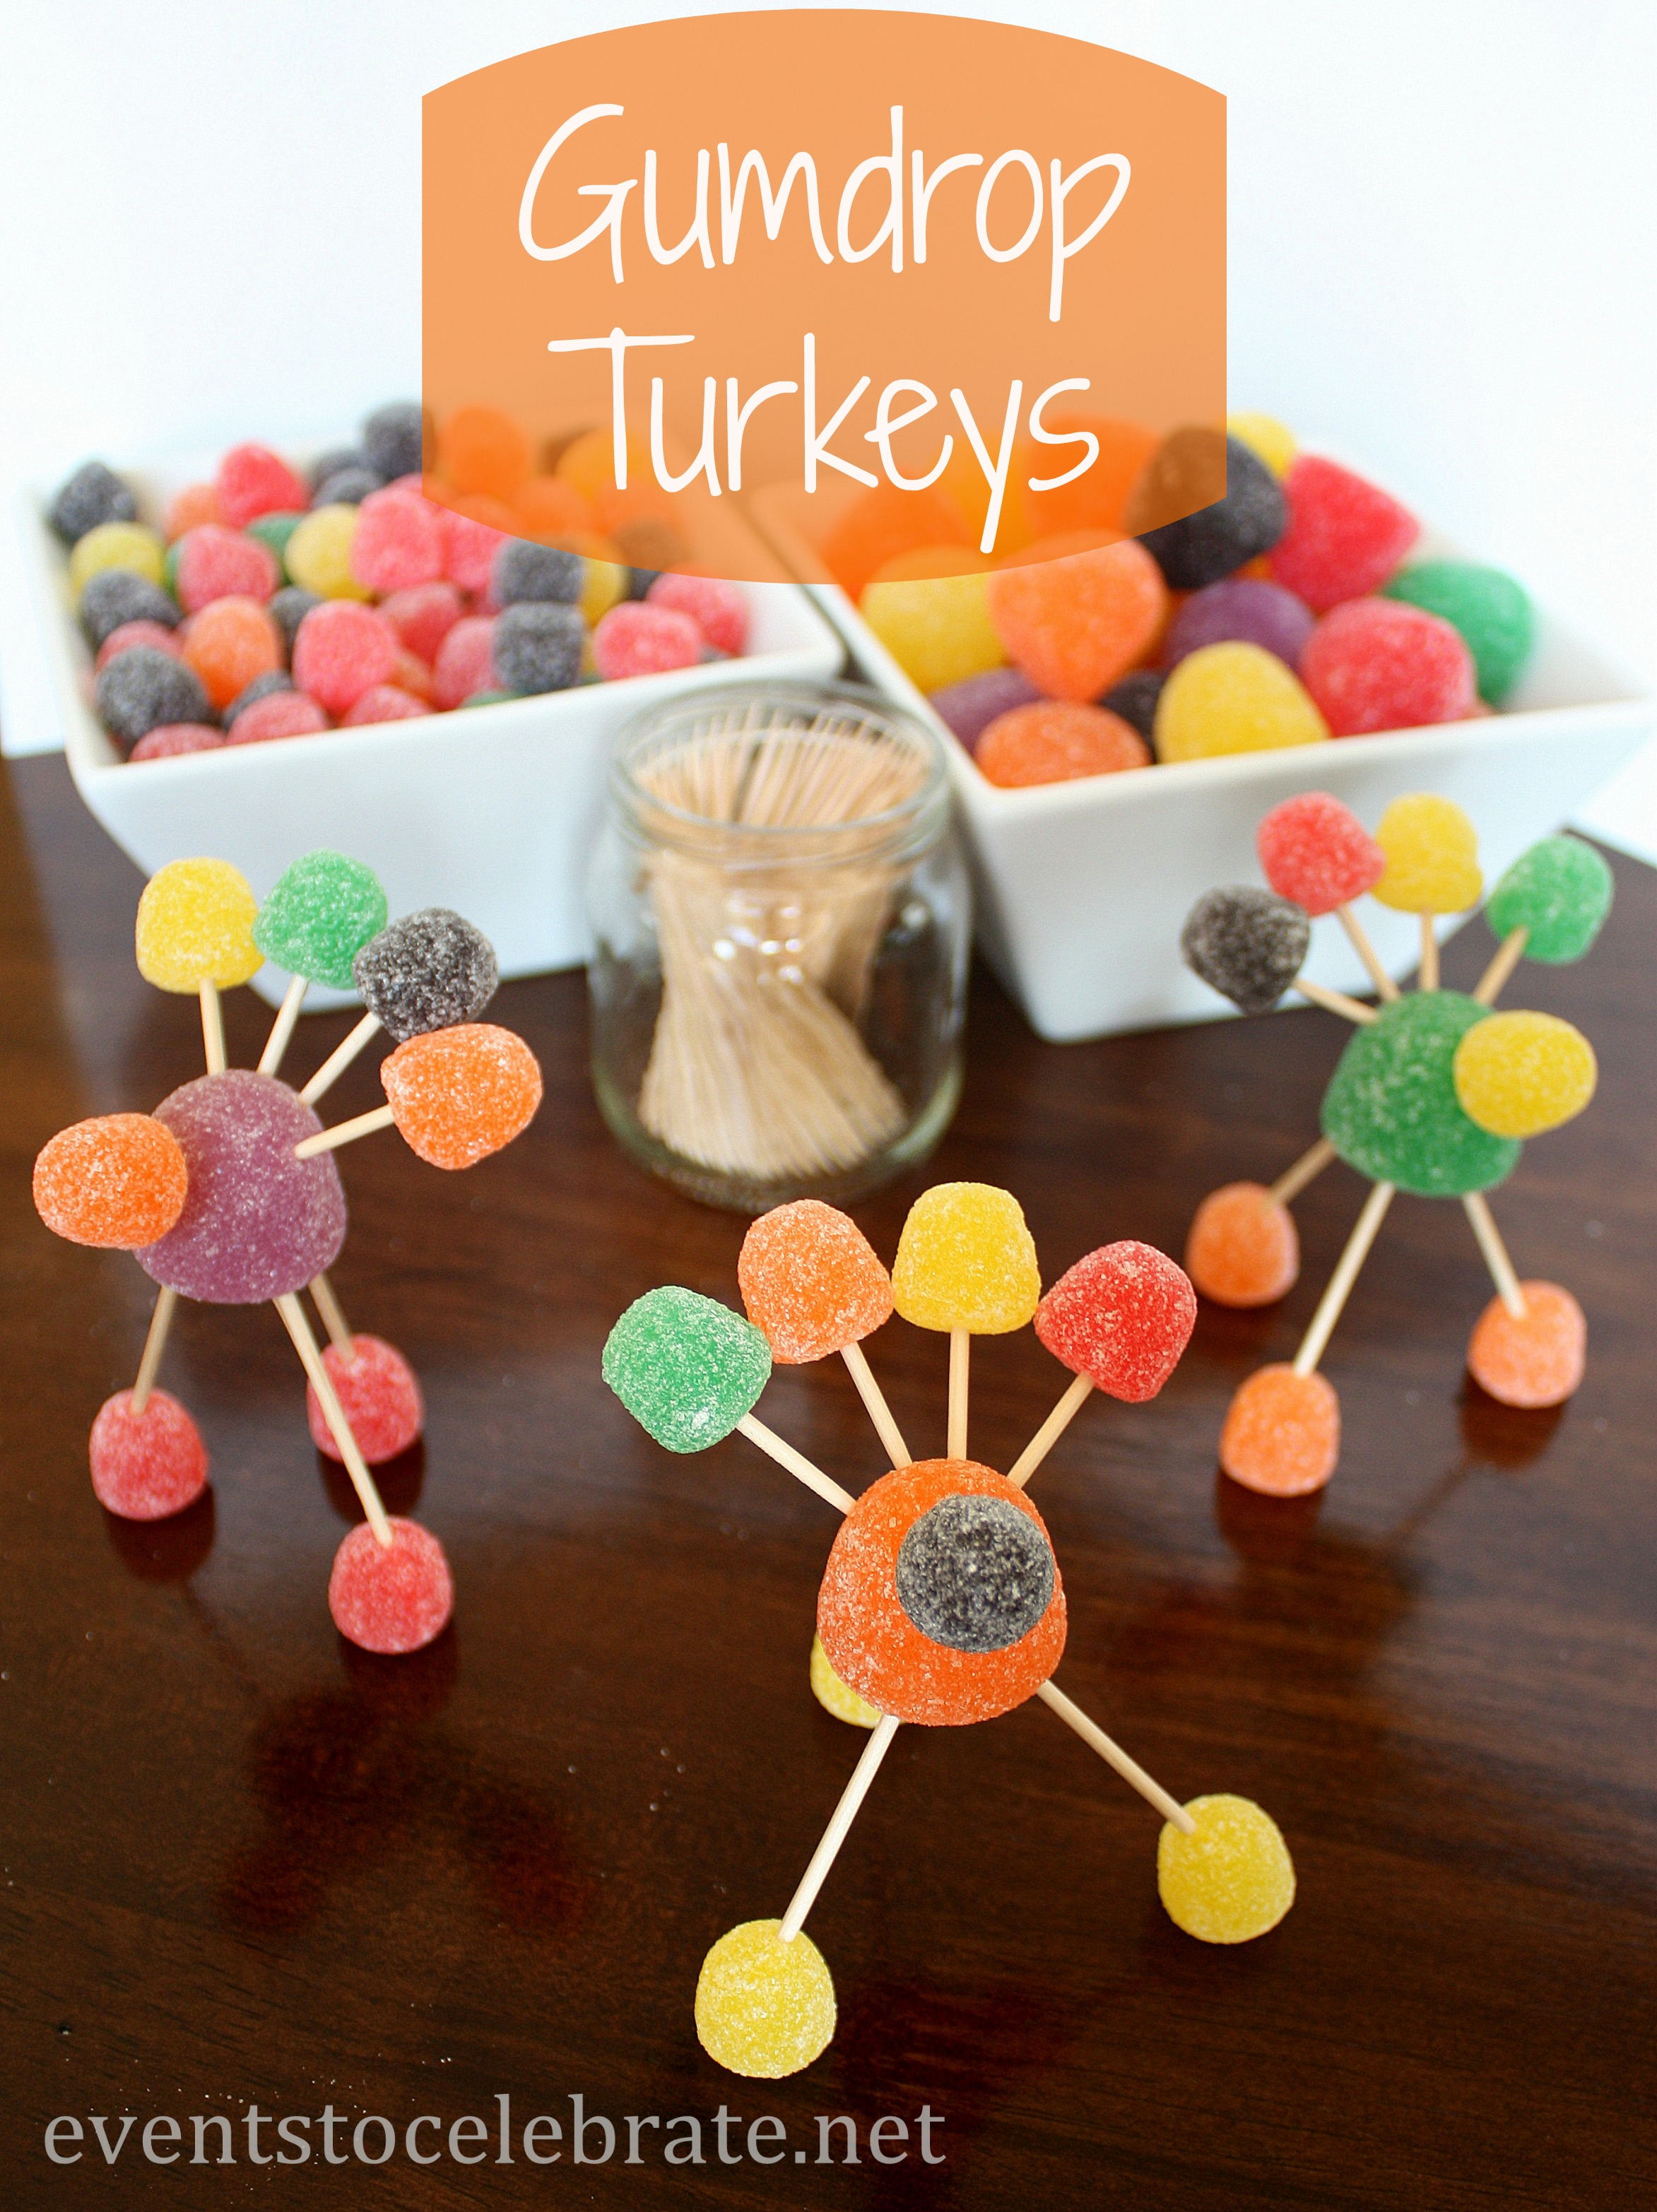 Superb Thanksgiving Kid Craft Ideas Part - 5: Thanksgiving Crafts - Gumdrop Turkeys - Eventstocelebrate.net